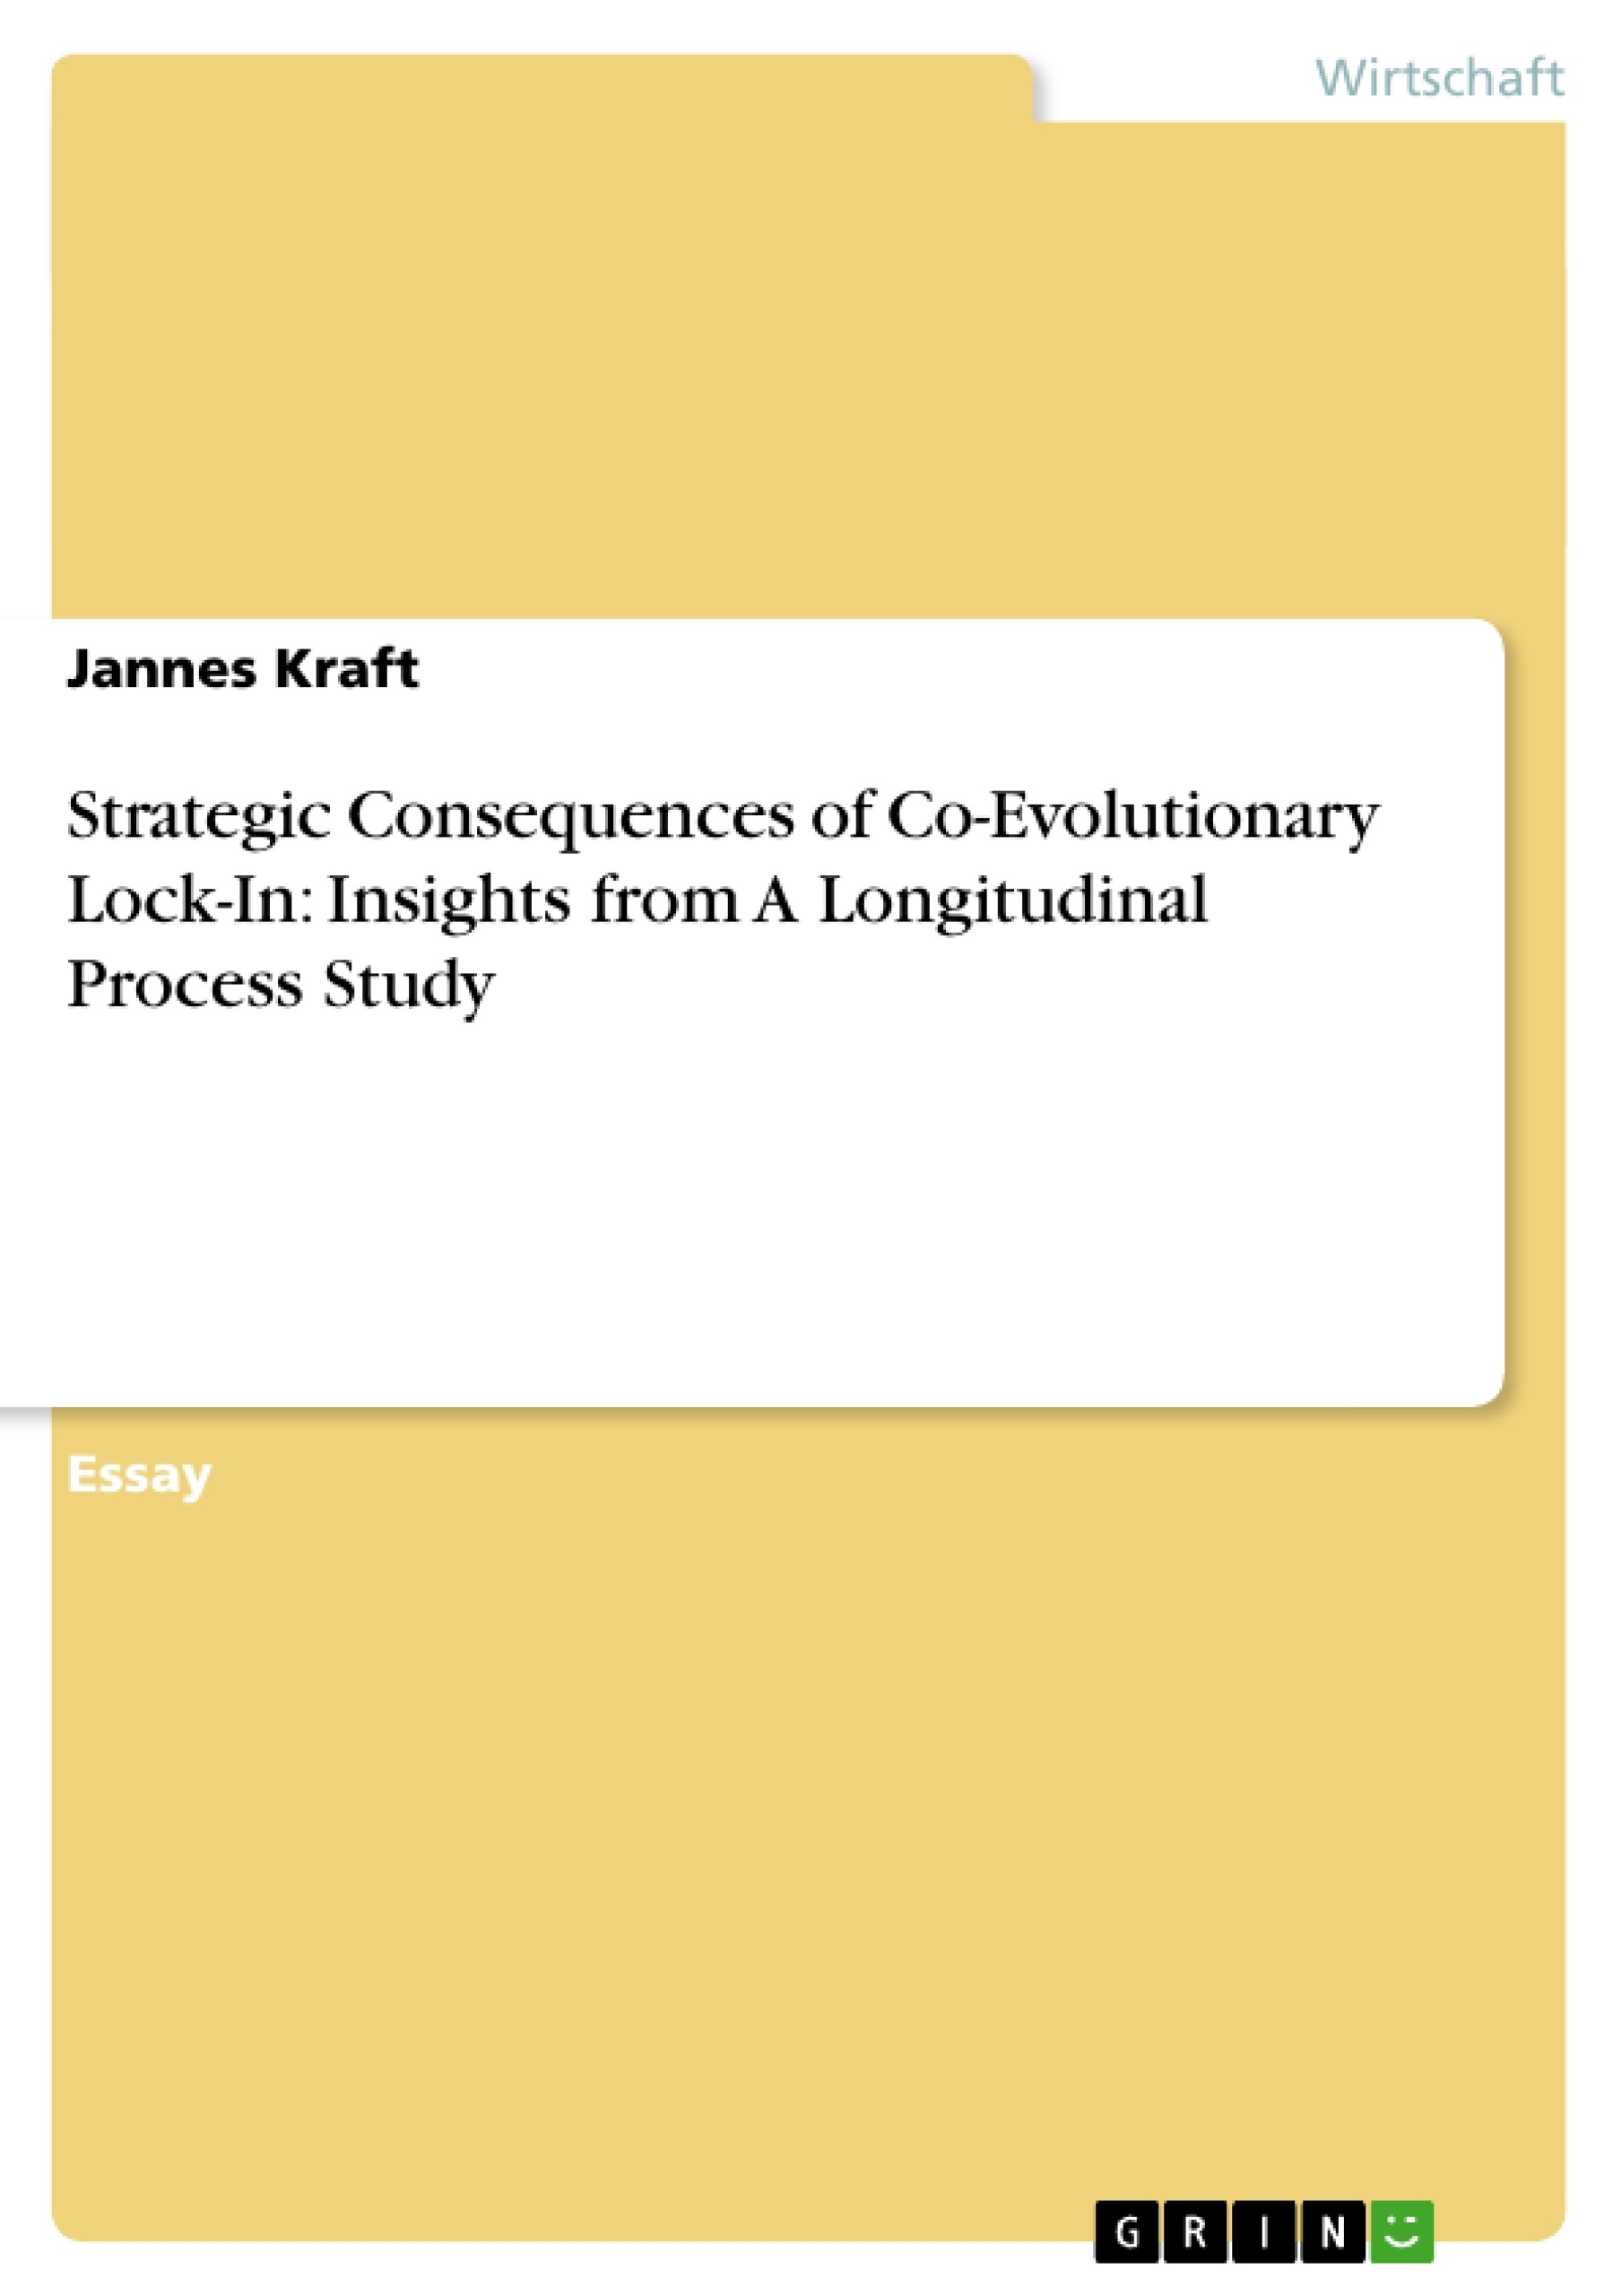 Titel: Strategic Consequences of Co-Evolutionary Lock-In: Insights from A Longitudinal Process Study